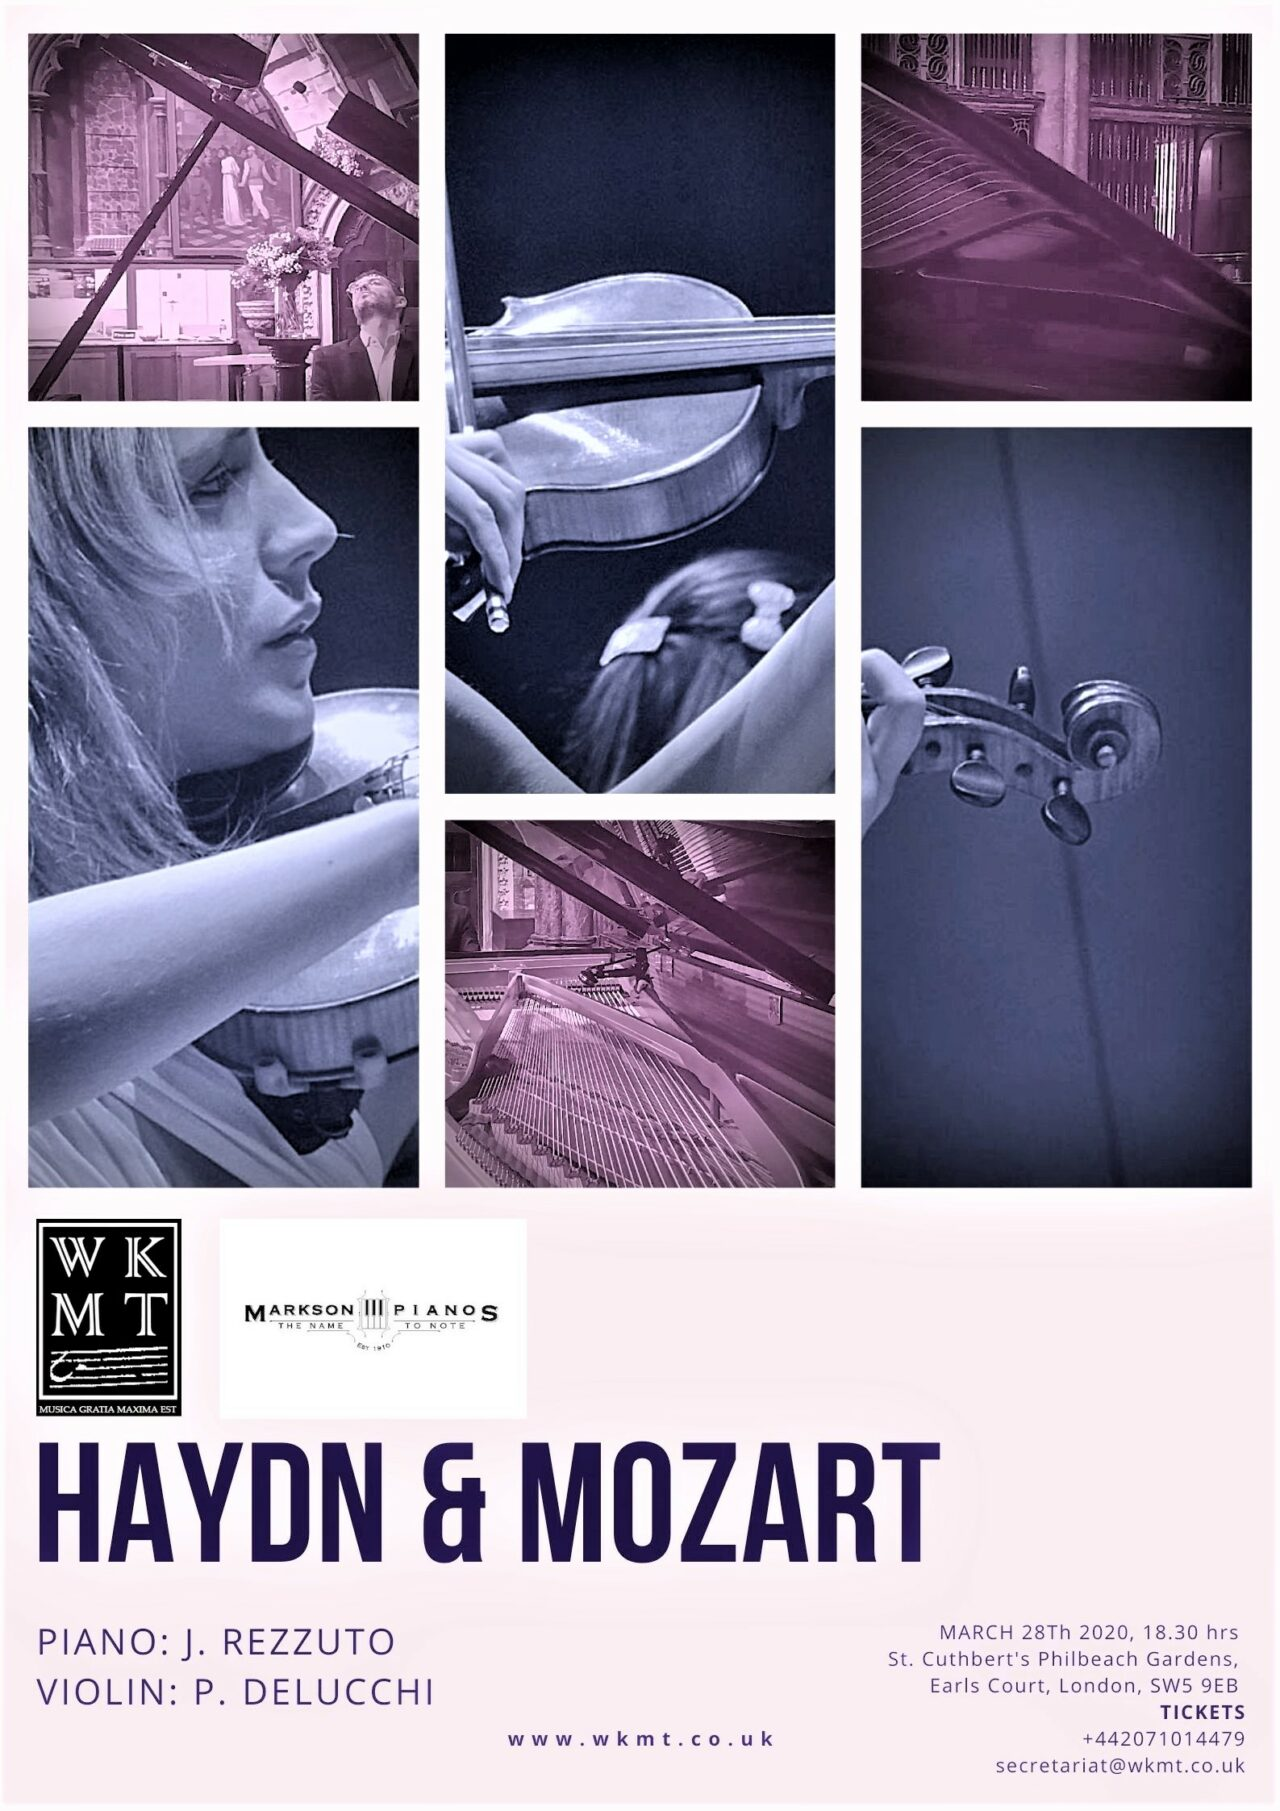 WKMT Concert March 2020: Haydn and Mozart together